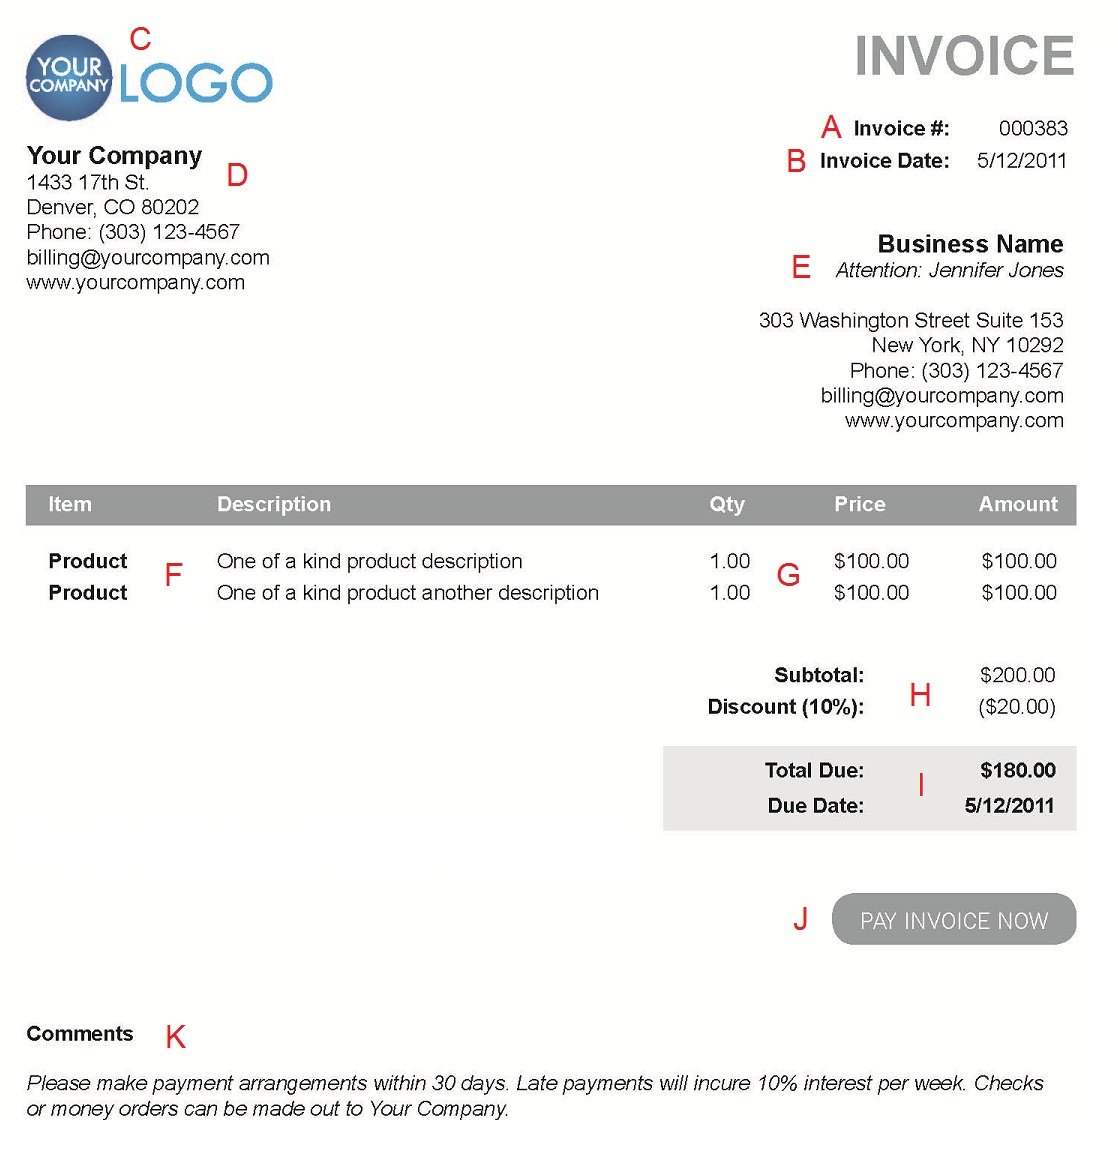 Opposenewapstandardsus  Marvellous The  Different Sections Of An Electronic Payment Invoice With Licious A  With Amusing Xml Invoice Also Invoice Schedule Template In Addition Program To Make Invoices And Blank Invoice Template Doc As Well As Accommodation Invoice Template Additionally Free Invoice Tool From Paysimplecom With Opposenewapstandardsus  Licious The  Different Sections Of An Electronic Payment Invoice With Amusing A  And Marvellous Xml Invoice Also Invoice Schedule Template In Addition Program To Make Invoices From Paysimplecom